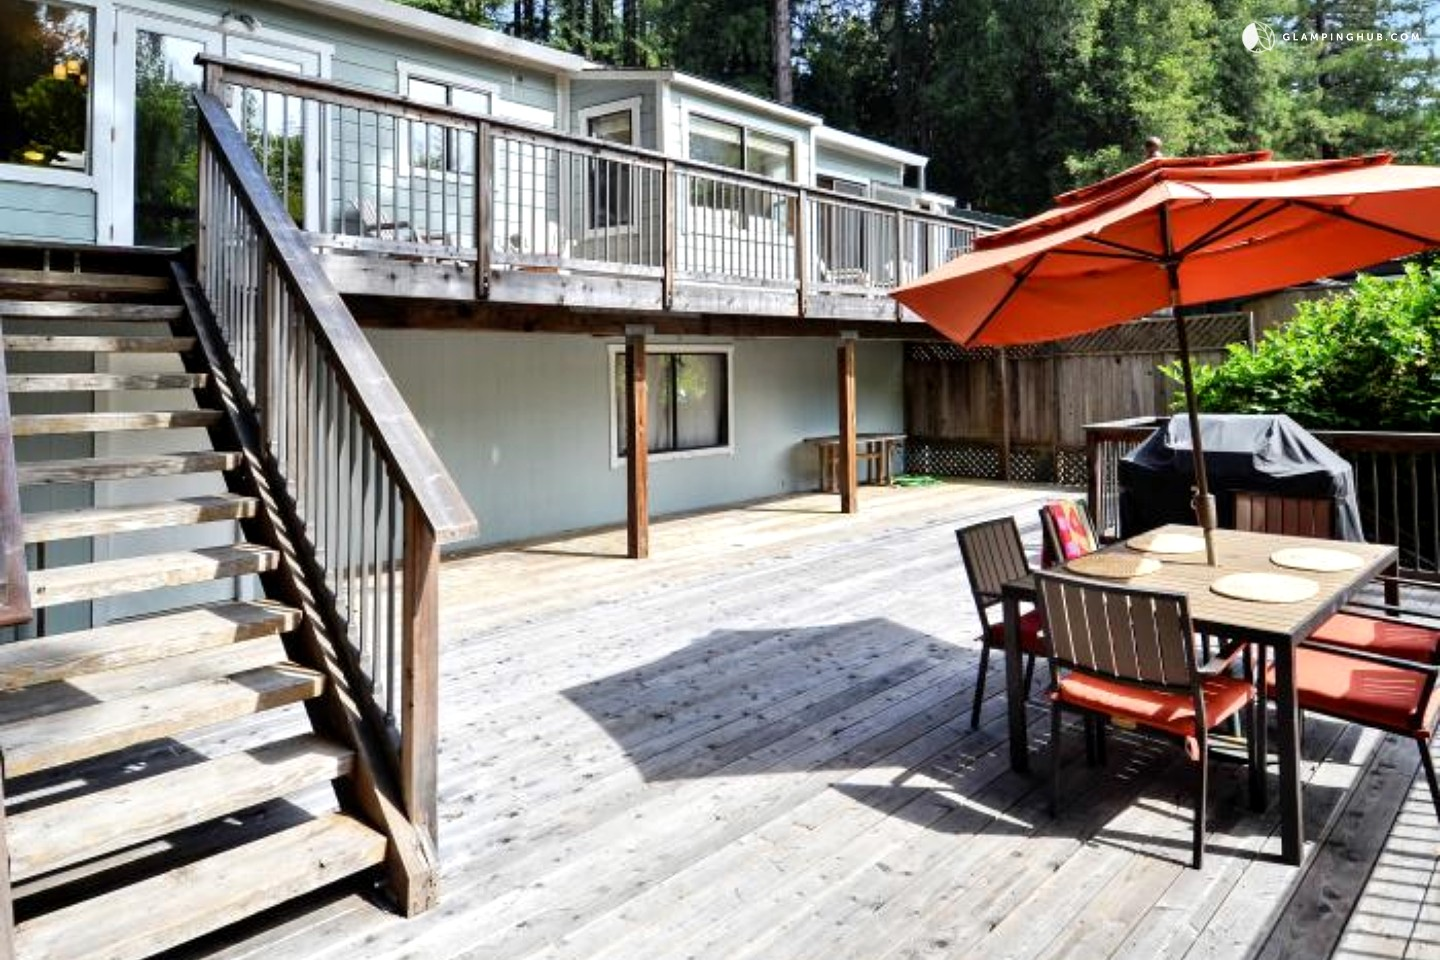 Redwood Cabin On Russian River In Guerneville, California